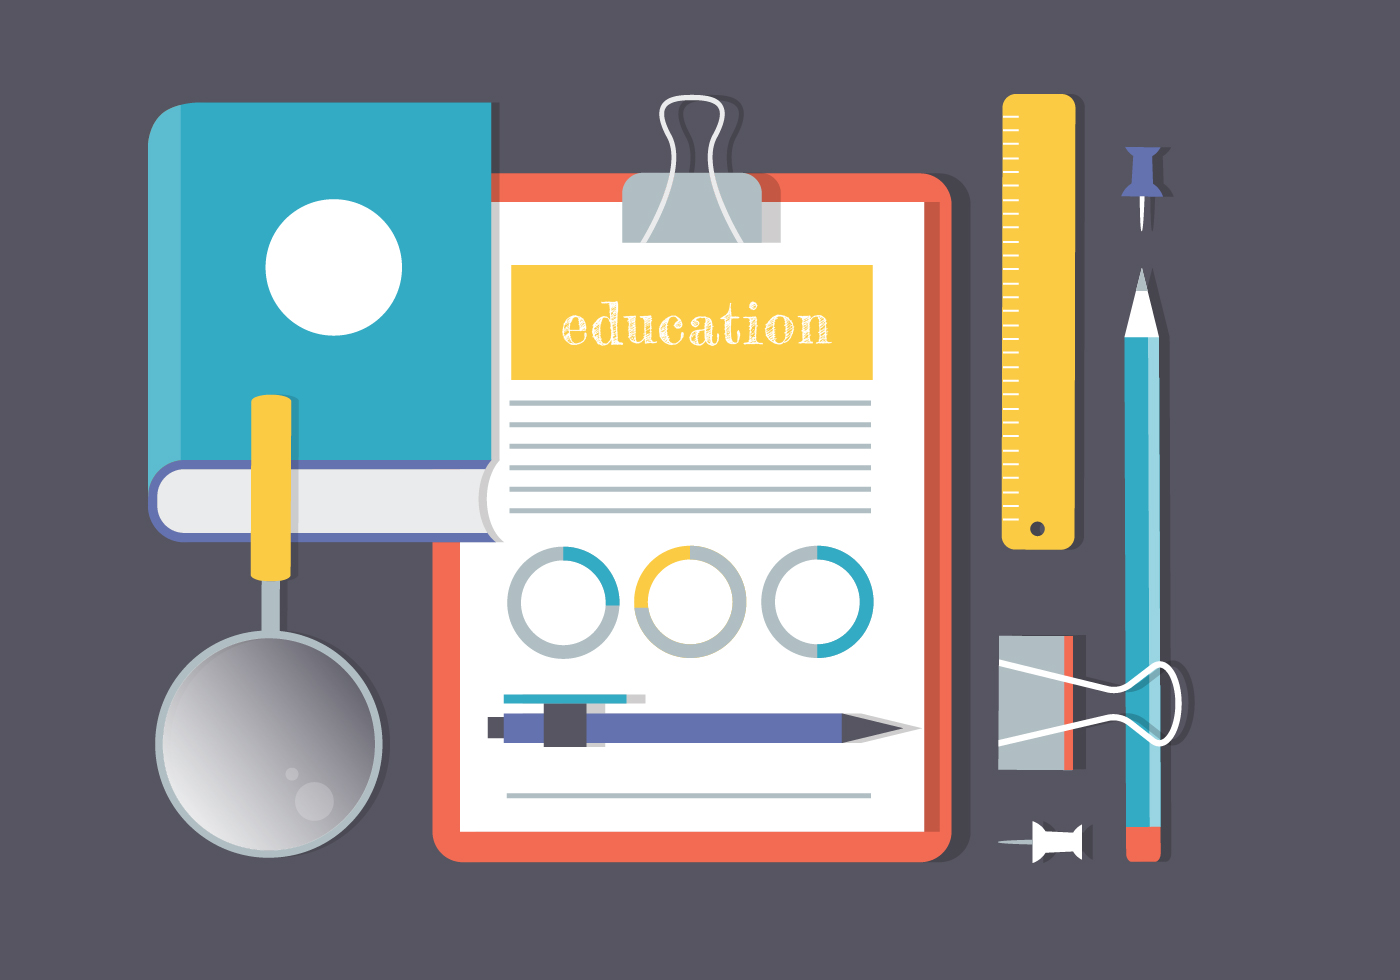 Free Flat Education Vector Elements - Download Free ...